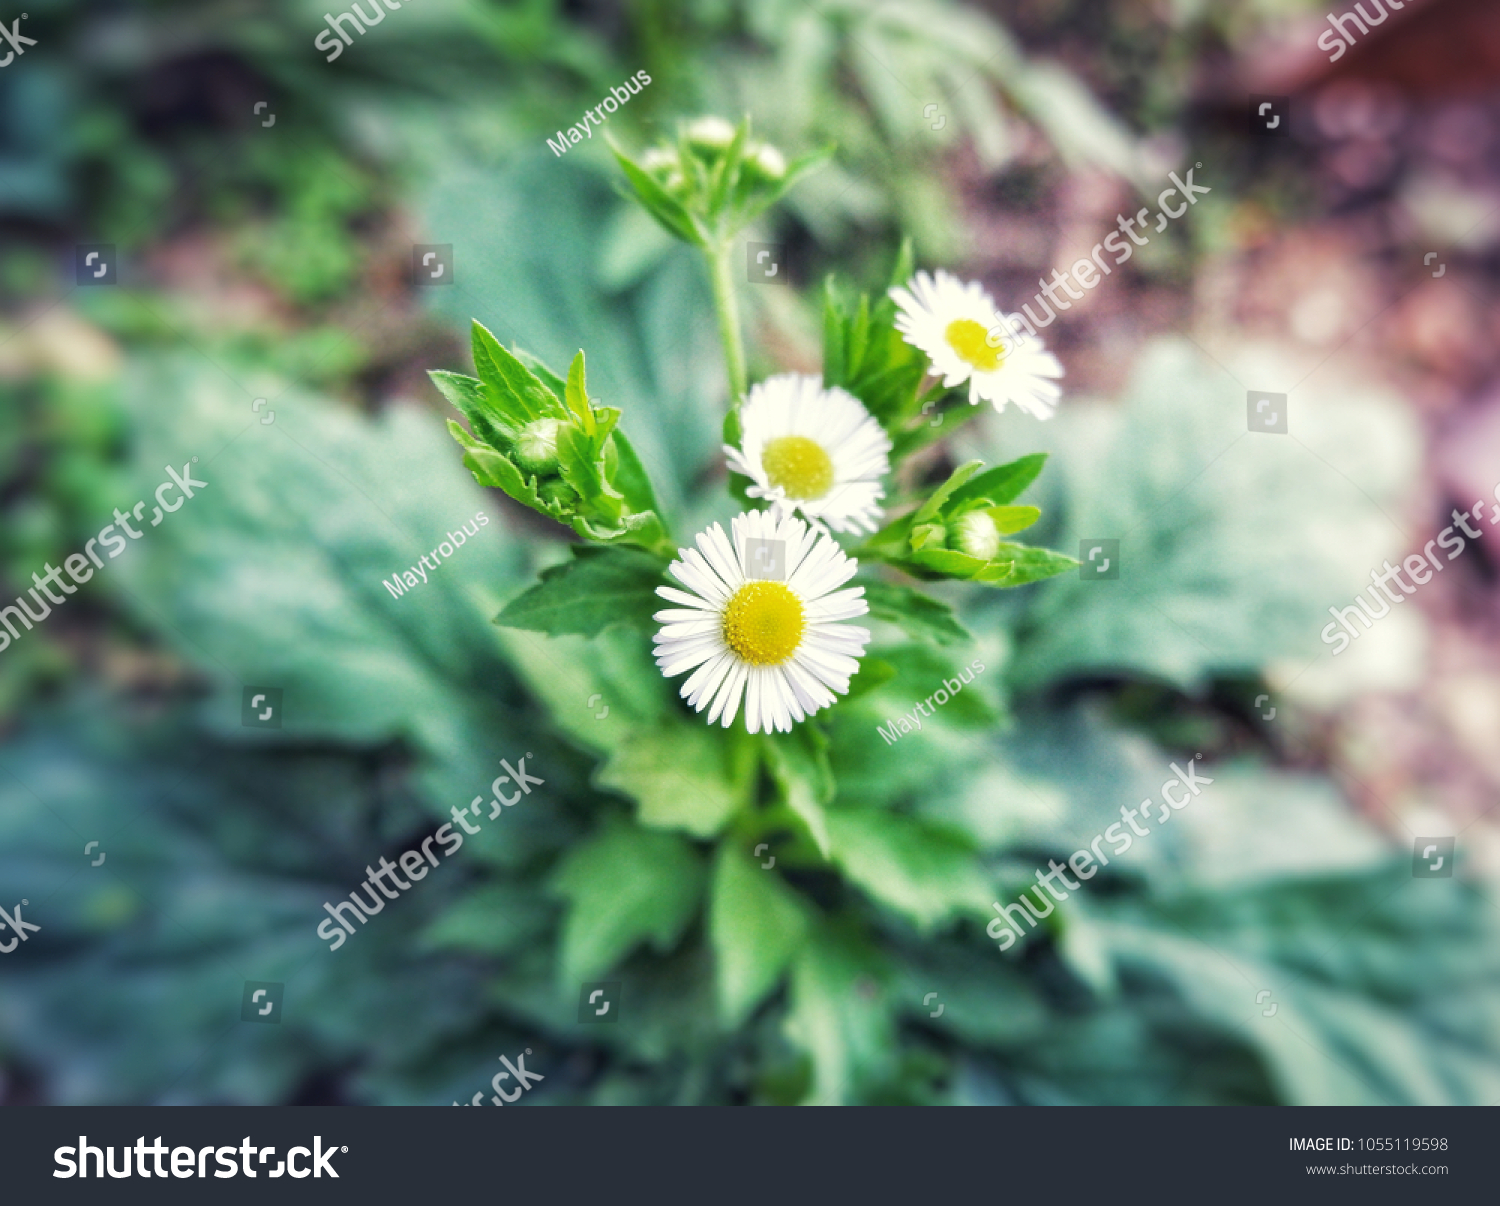 White cutter flowers garden meaning that flower stock photo edit white cutter flowers in the gardenmeaning that the flower sacrificedall trees in izmirmasajfo